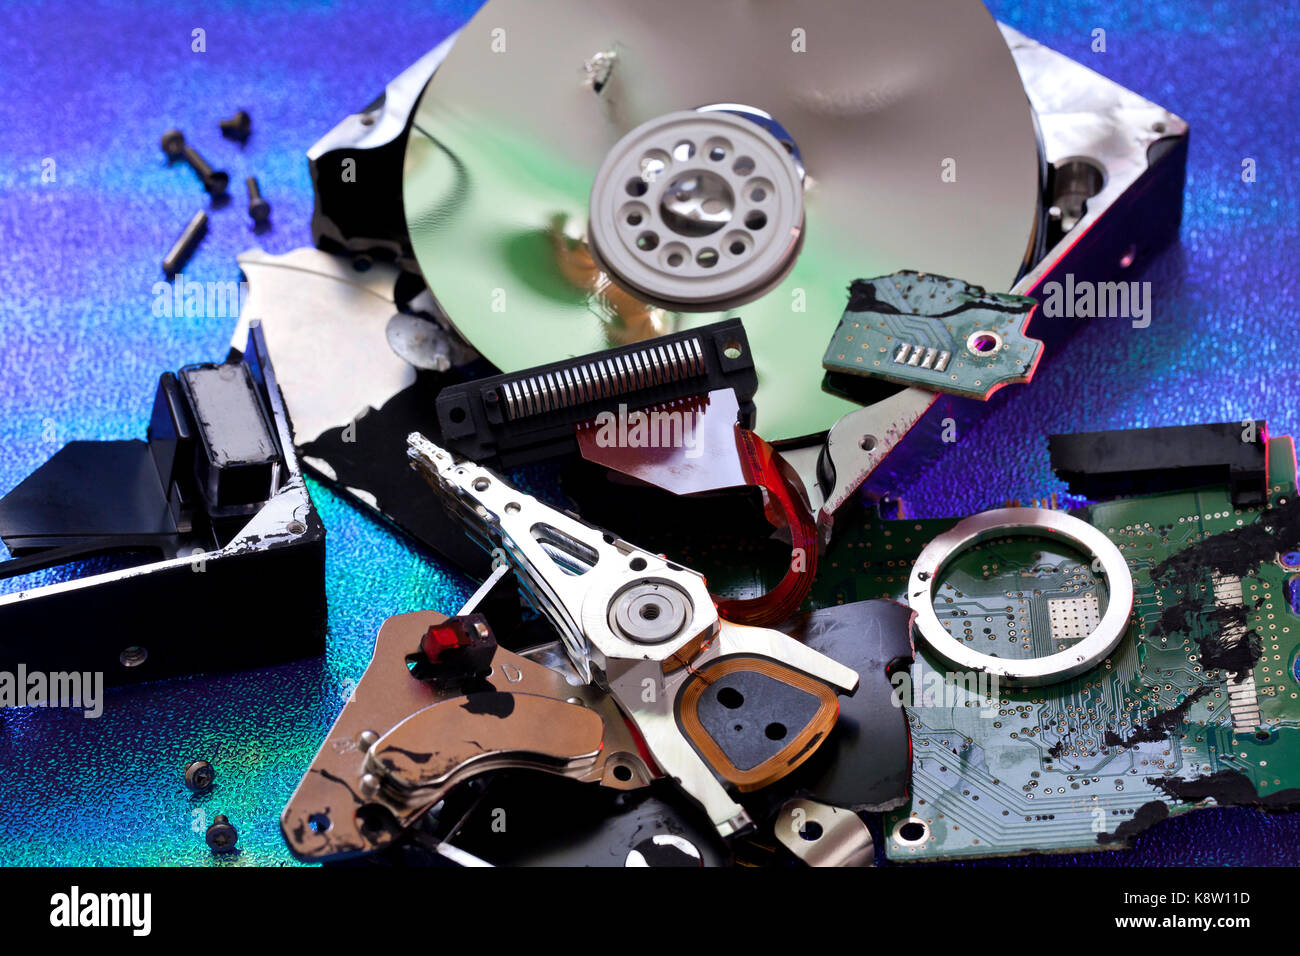 Parts of destroyed computer hard disk drive (HDD exploded view, HDD destroy) - USA - Stock Image